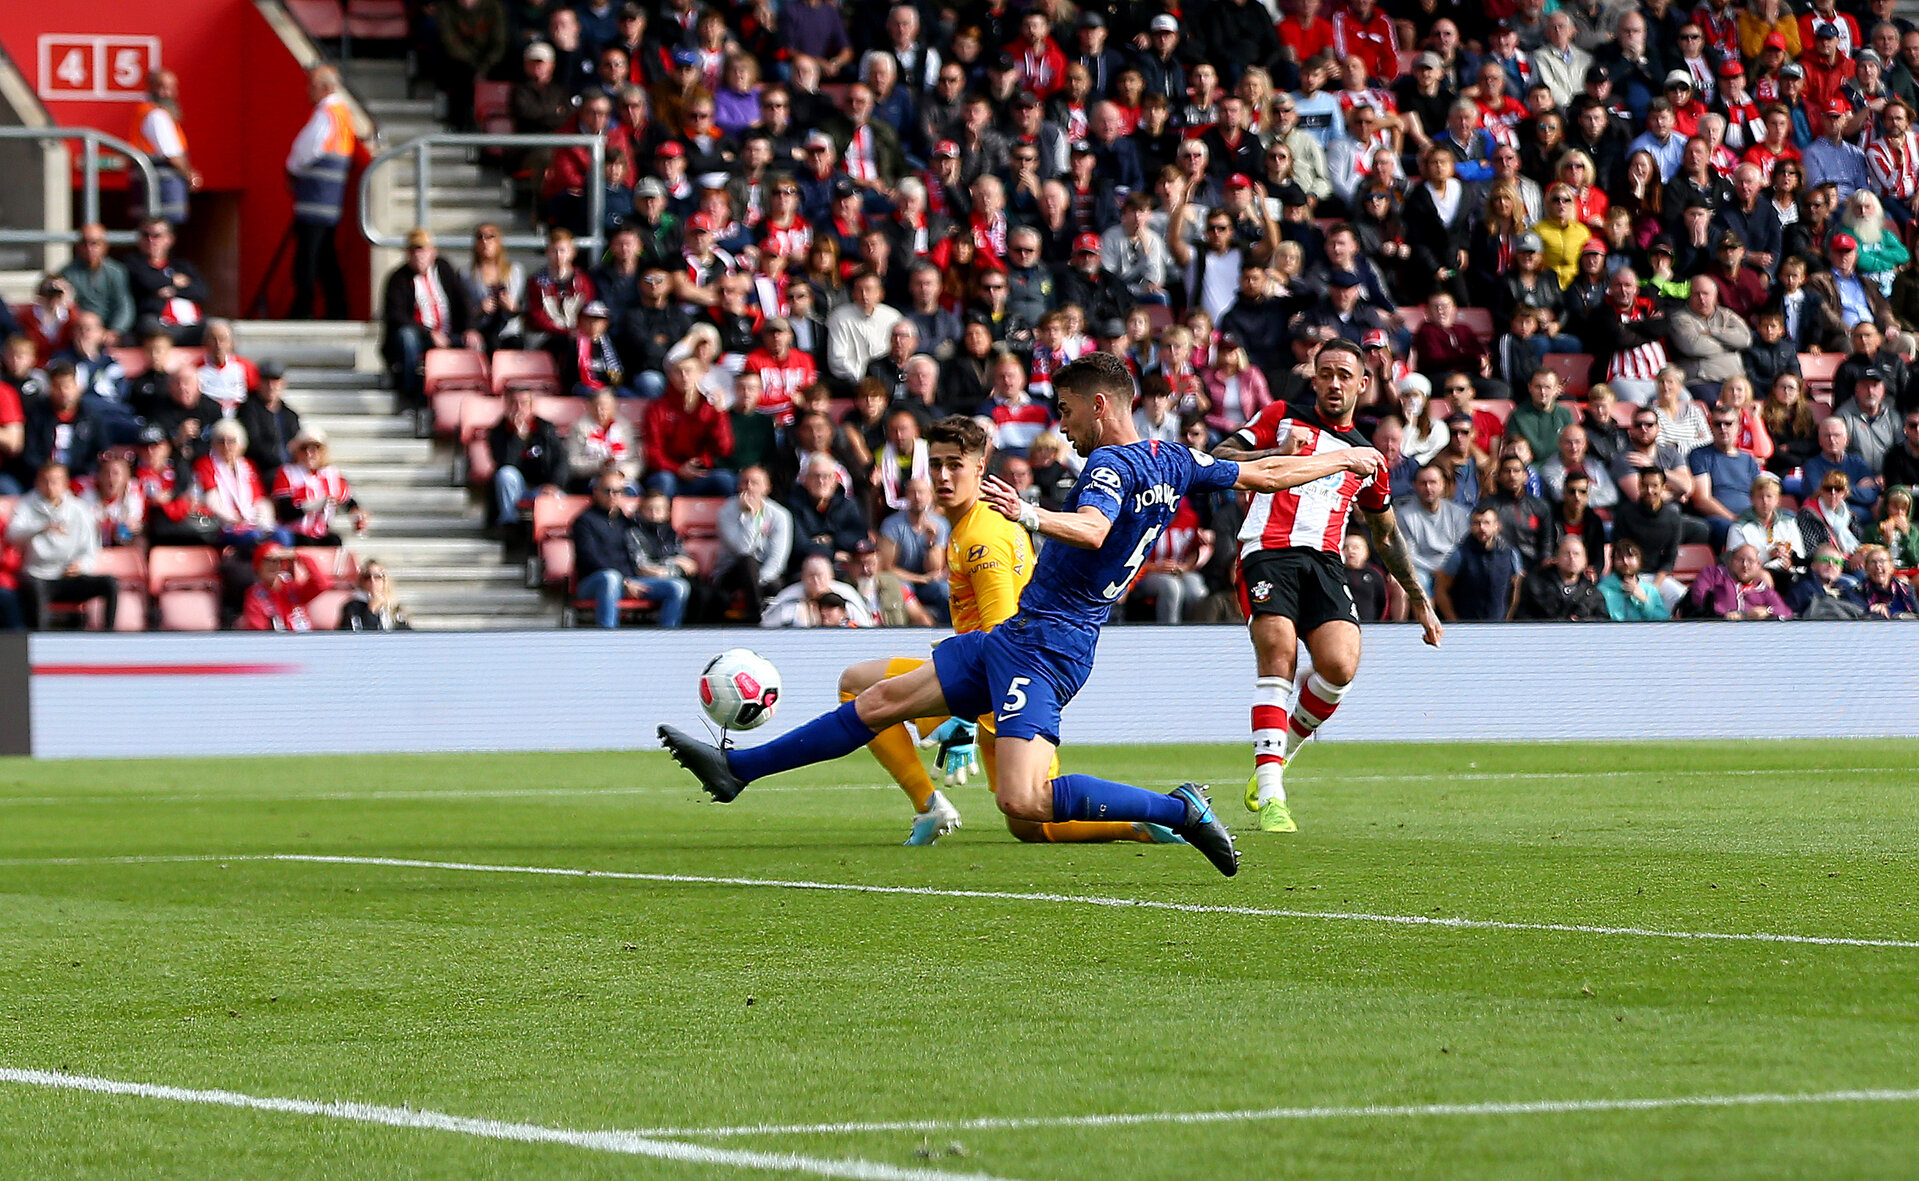 SOUTHAMPTON, ENGLAND - OCTOBER 06: Danny Ings(R) of Southampton sees his shot blocked by Jorginho of Chelsea during the Premier League match between Southampton FC and Chelsea FC at St Mary's Stadium on October 06, 2019 in Southampton, United Kingdom. (Photo by Matt Watson/Southampton FC via Getty Images)